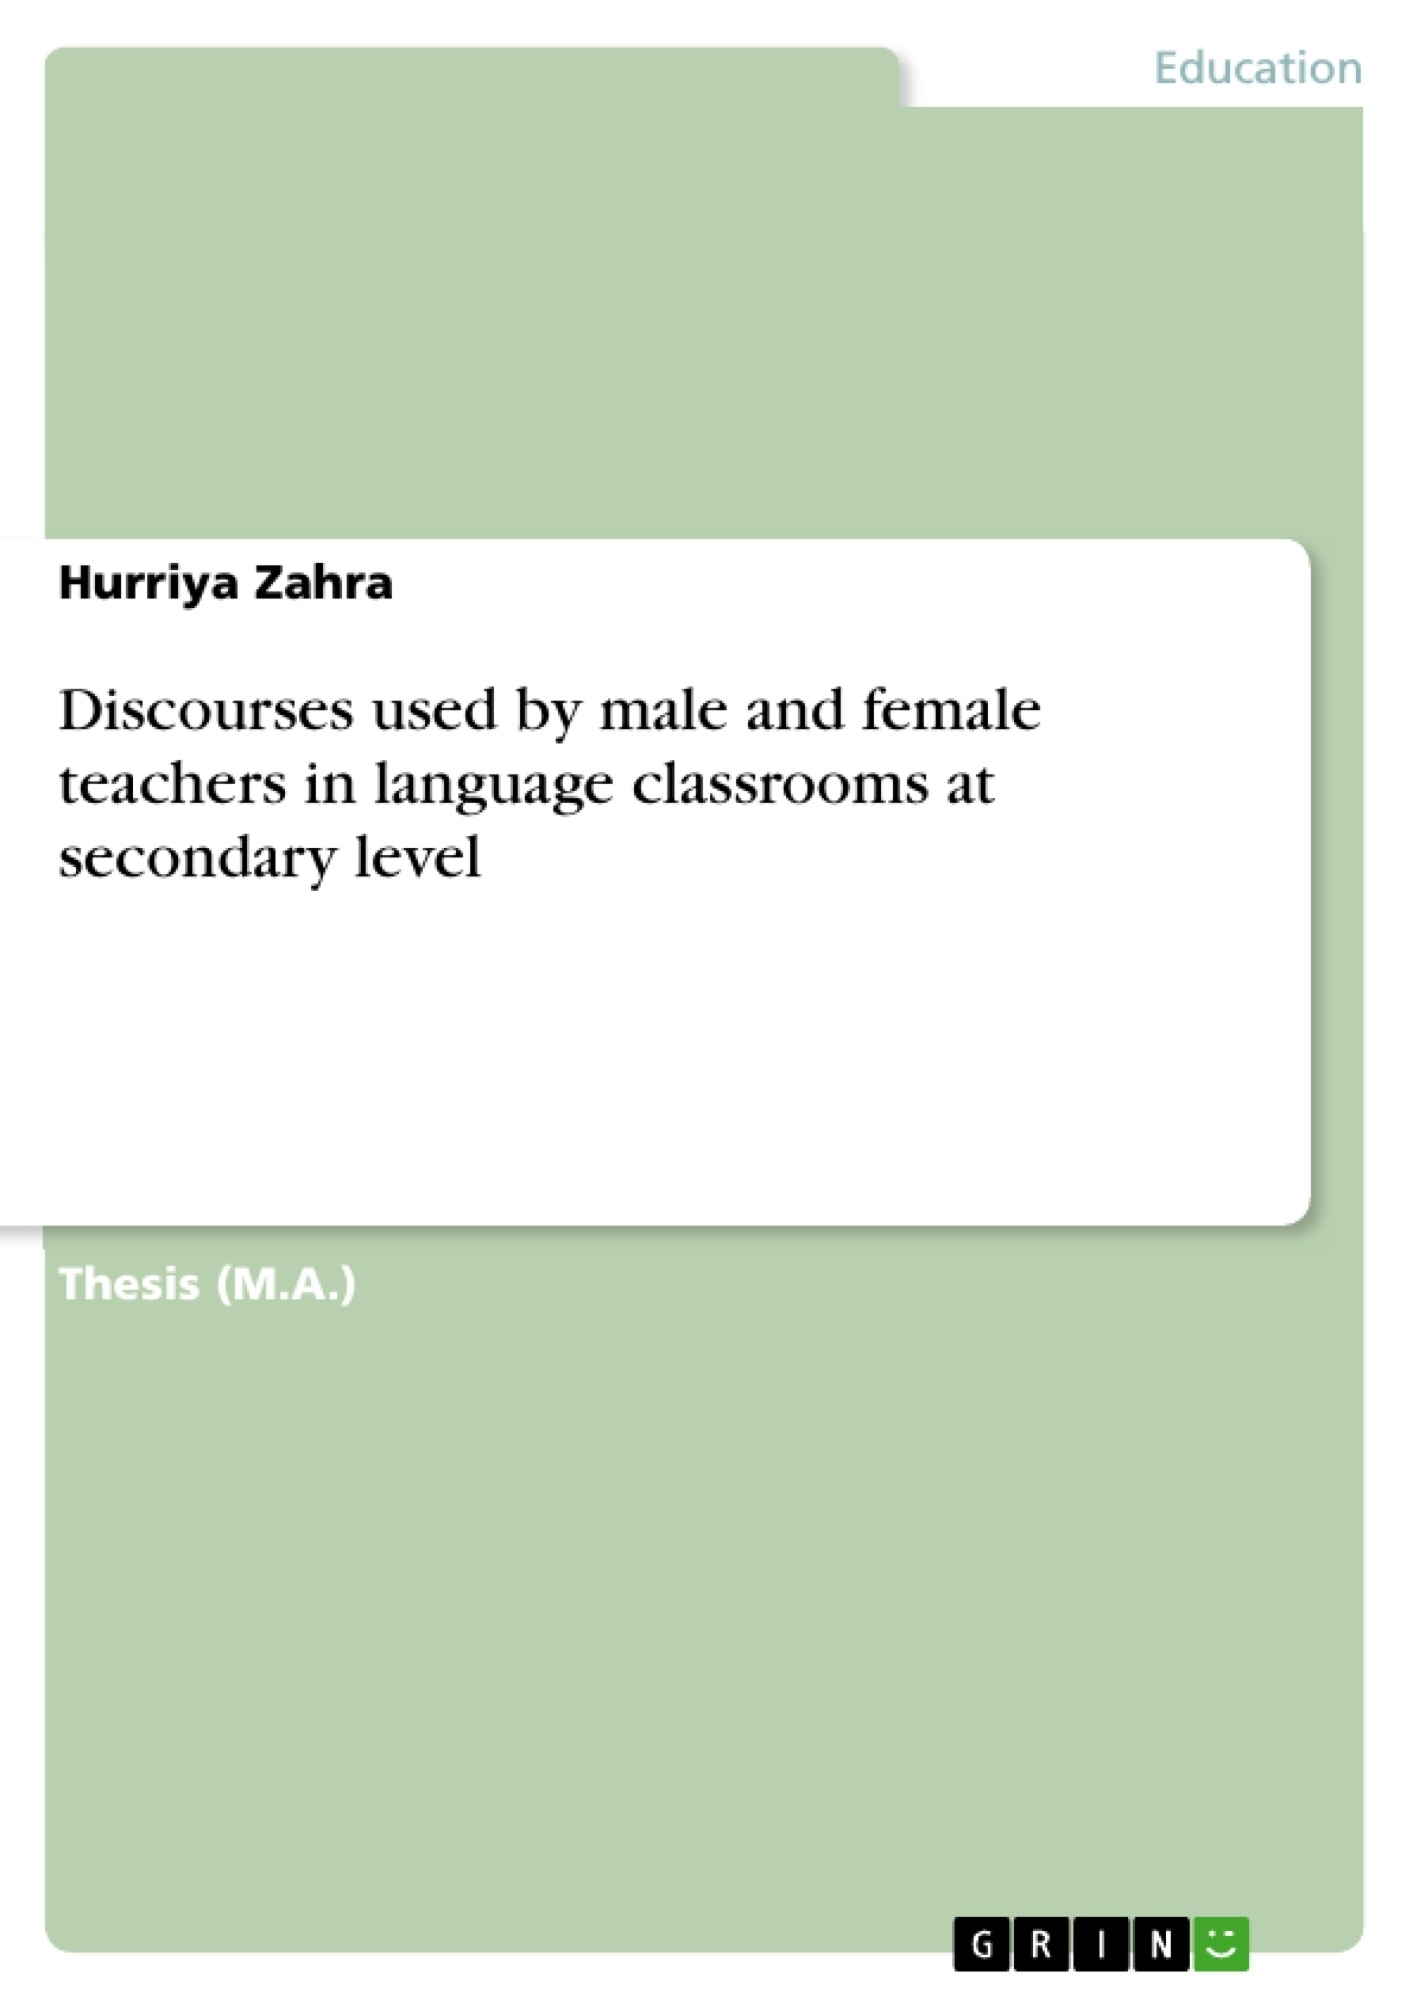 Title: Discourses used by male and female teachers in language classrooms at secondary level